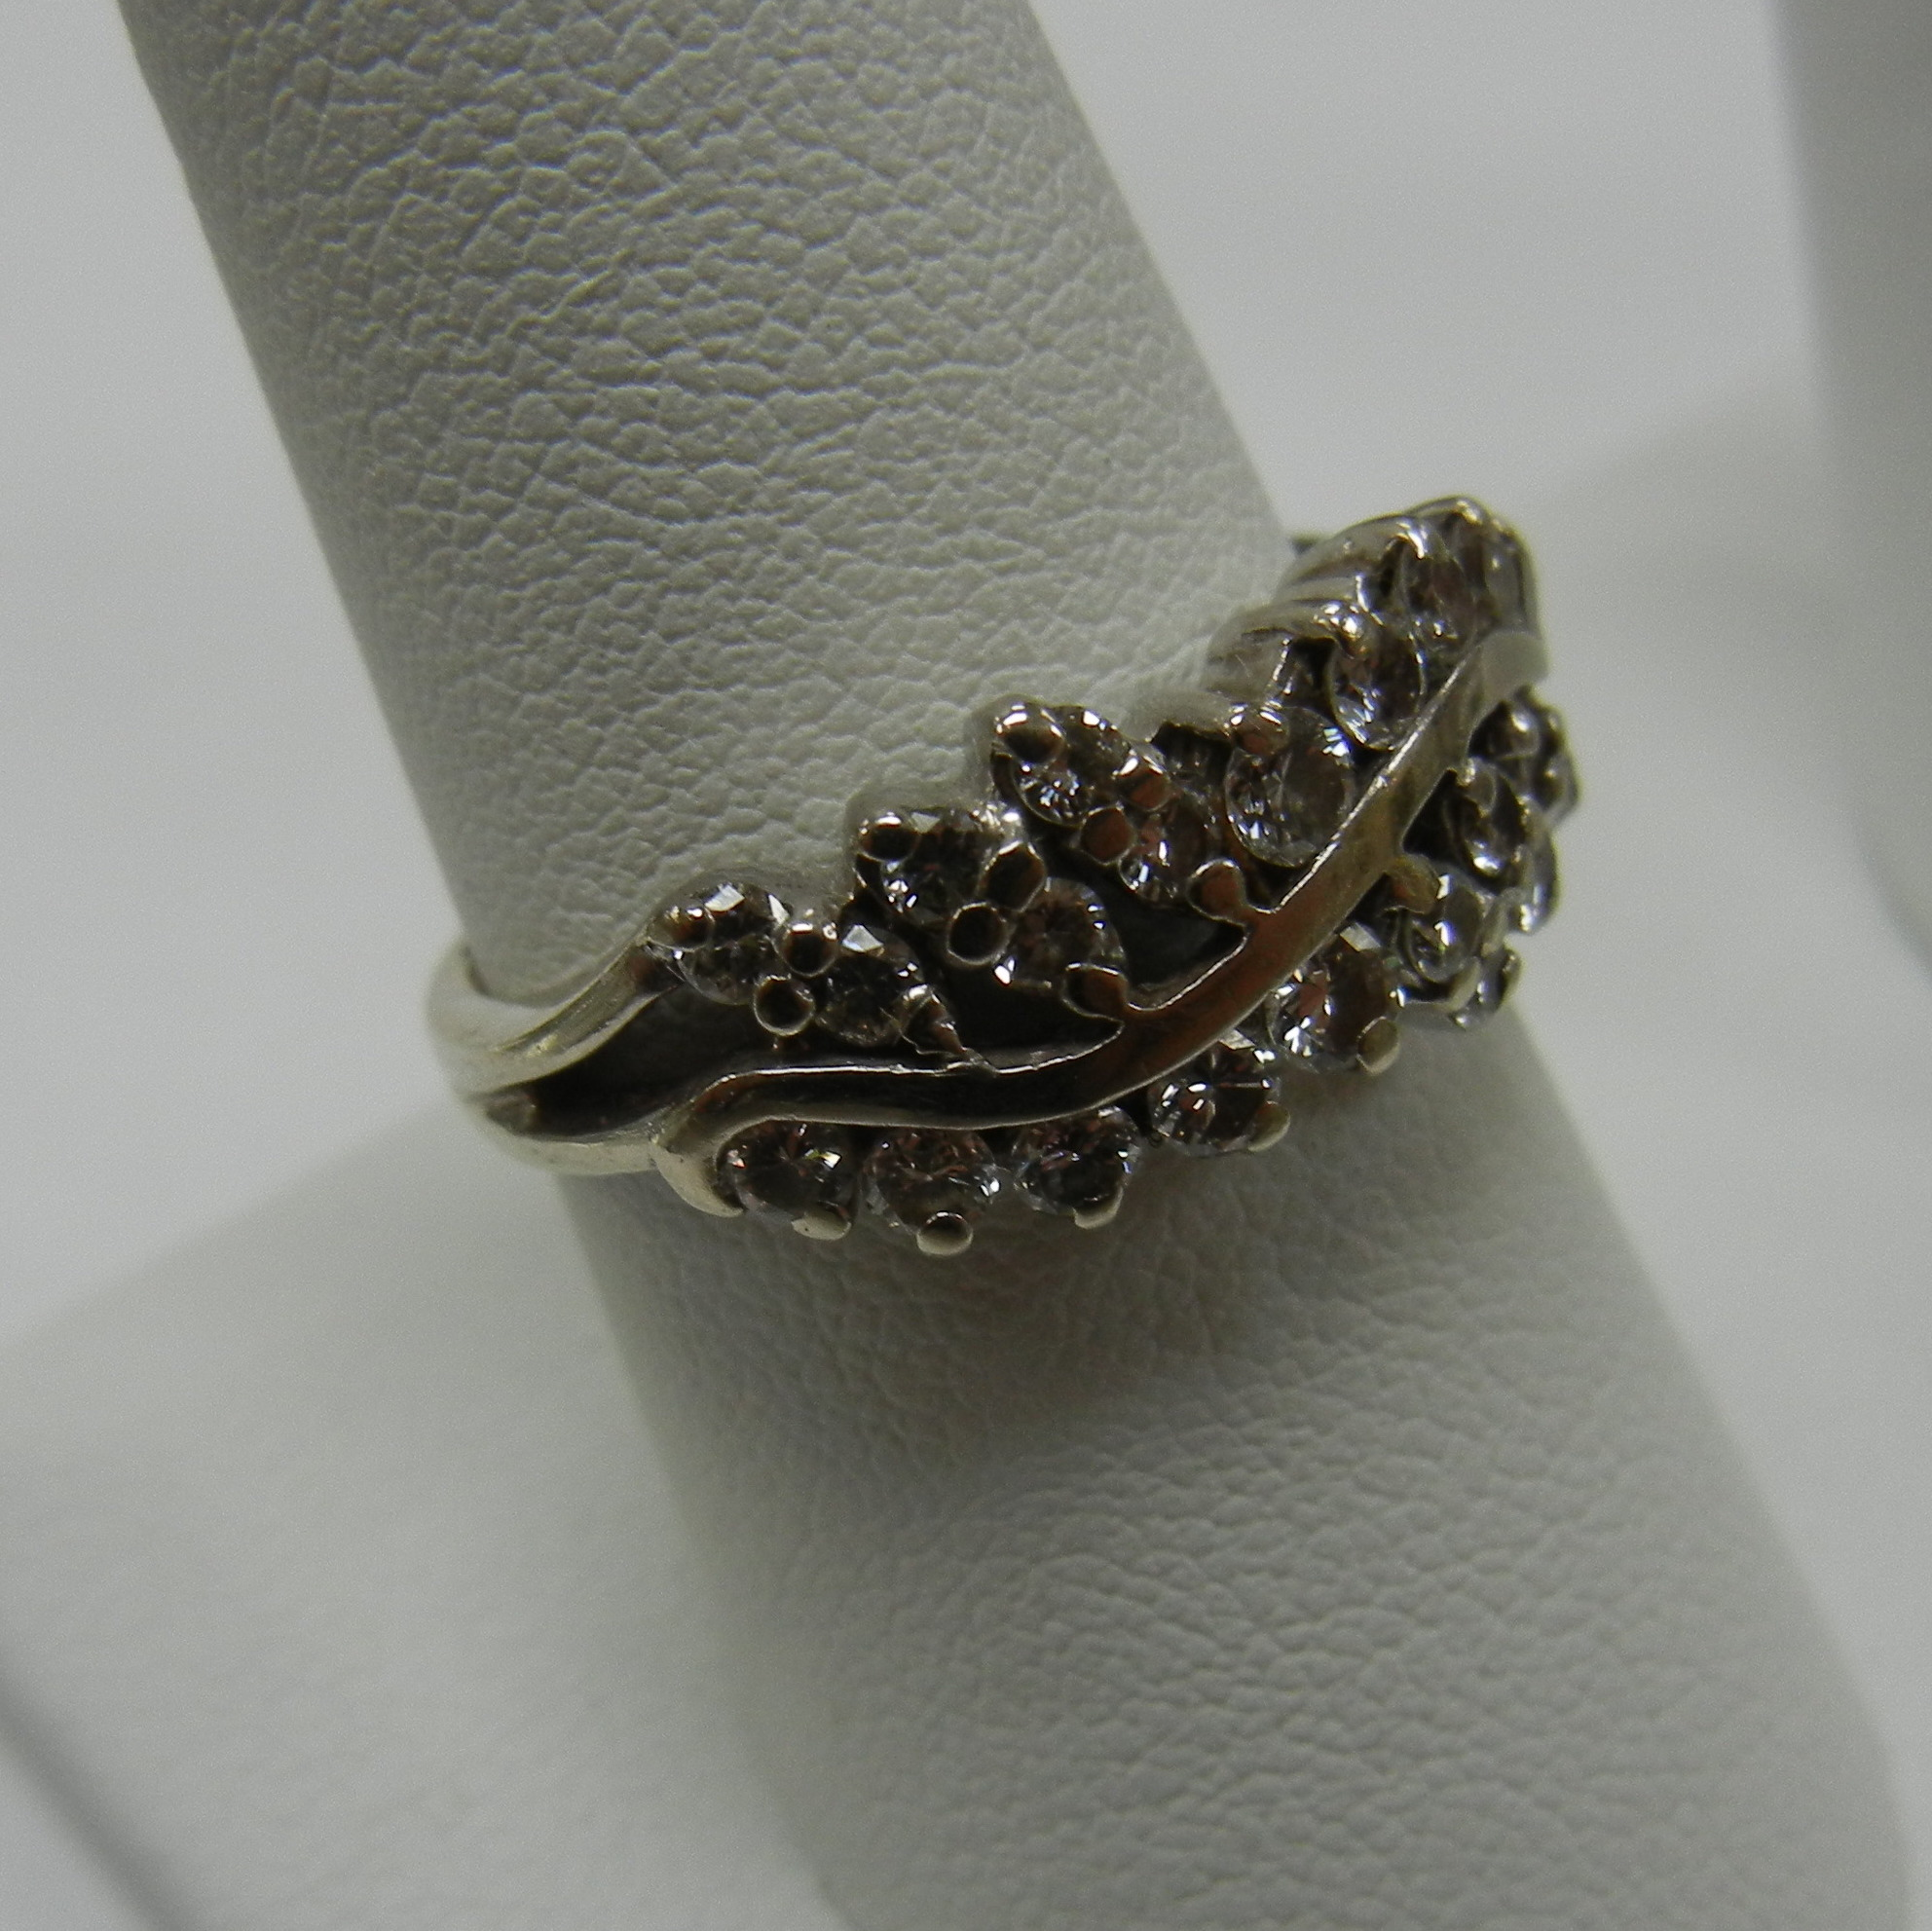 14 KT WHITE GOLD RING WITH CLEAR DIAMONDS IN LEAF PATTERN - SIZE 7.5